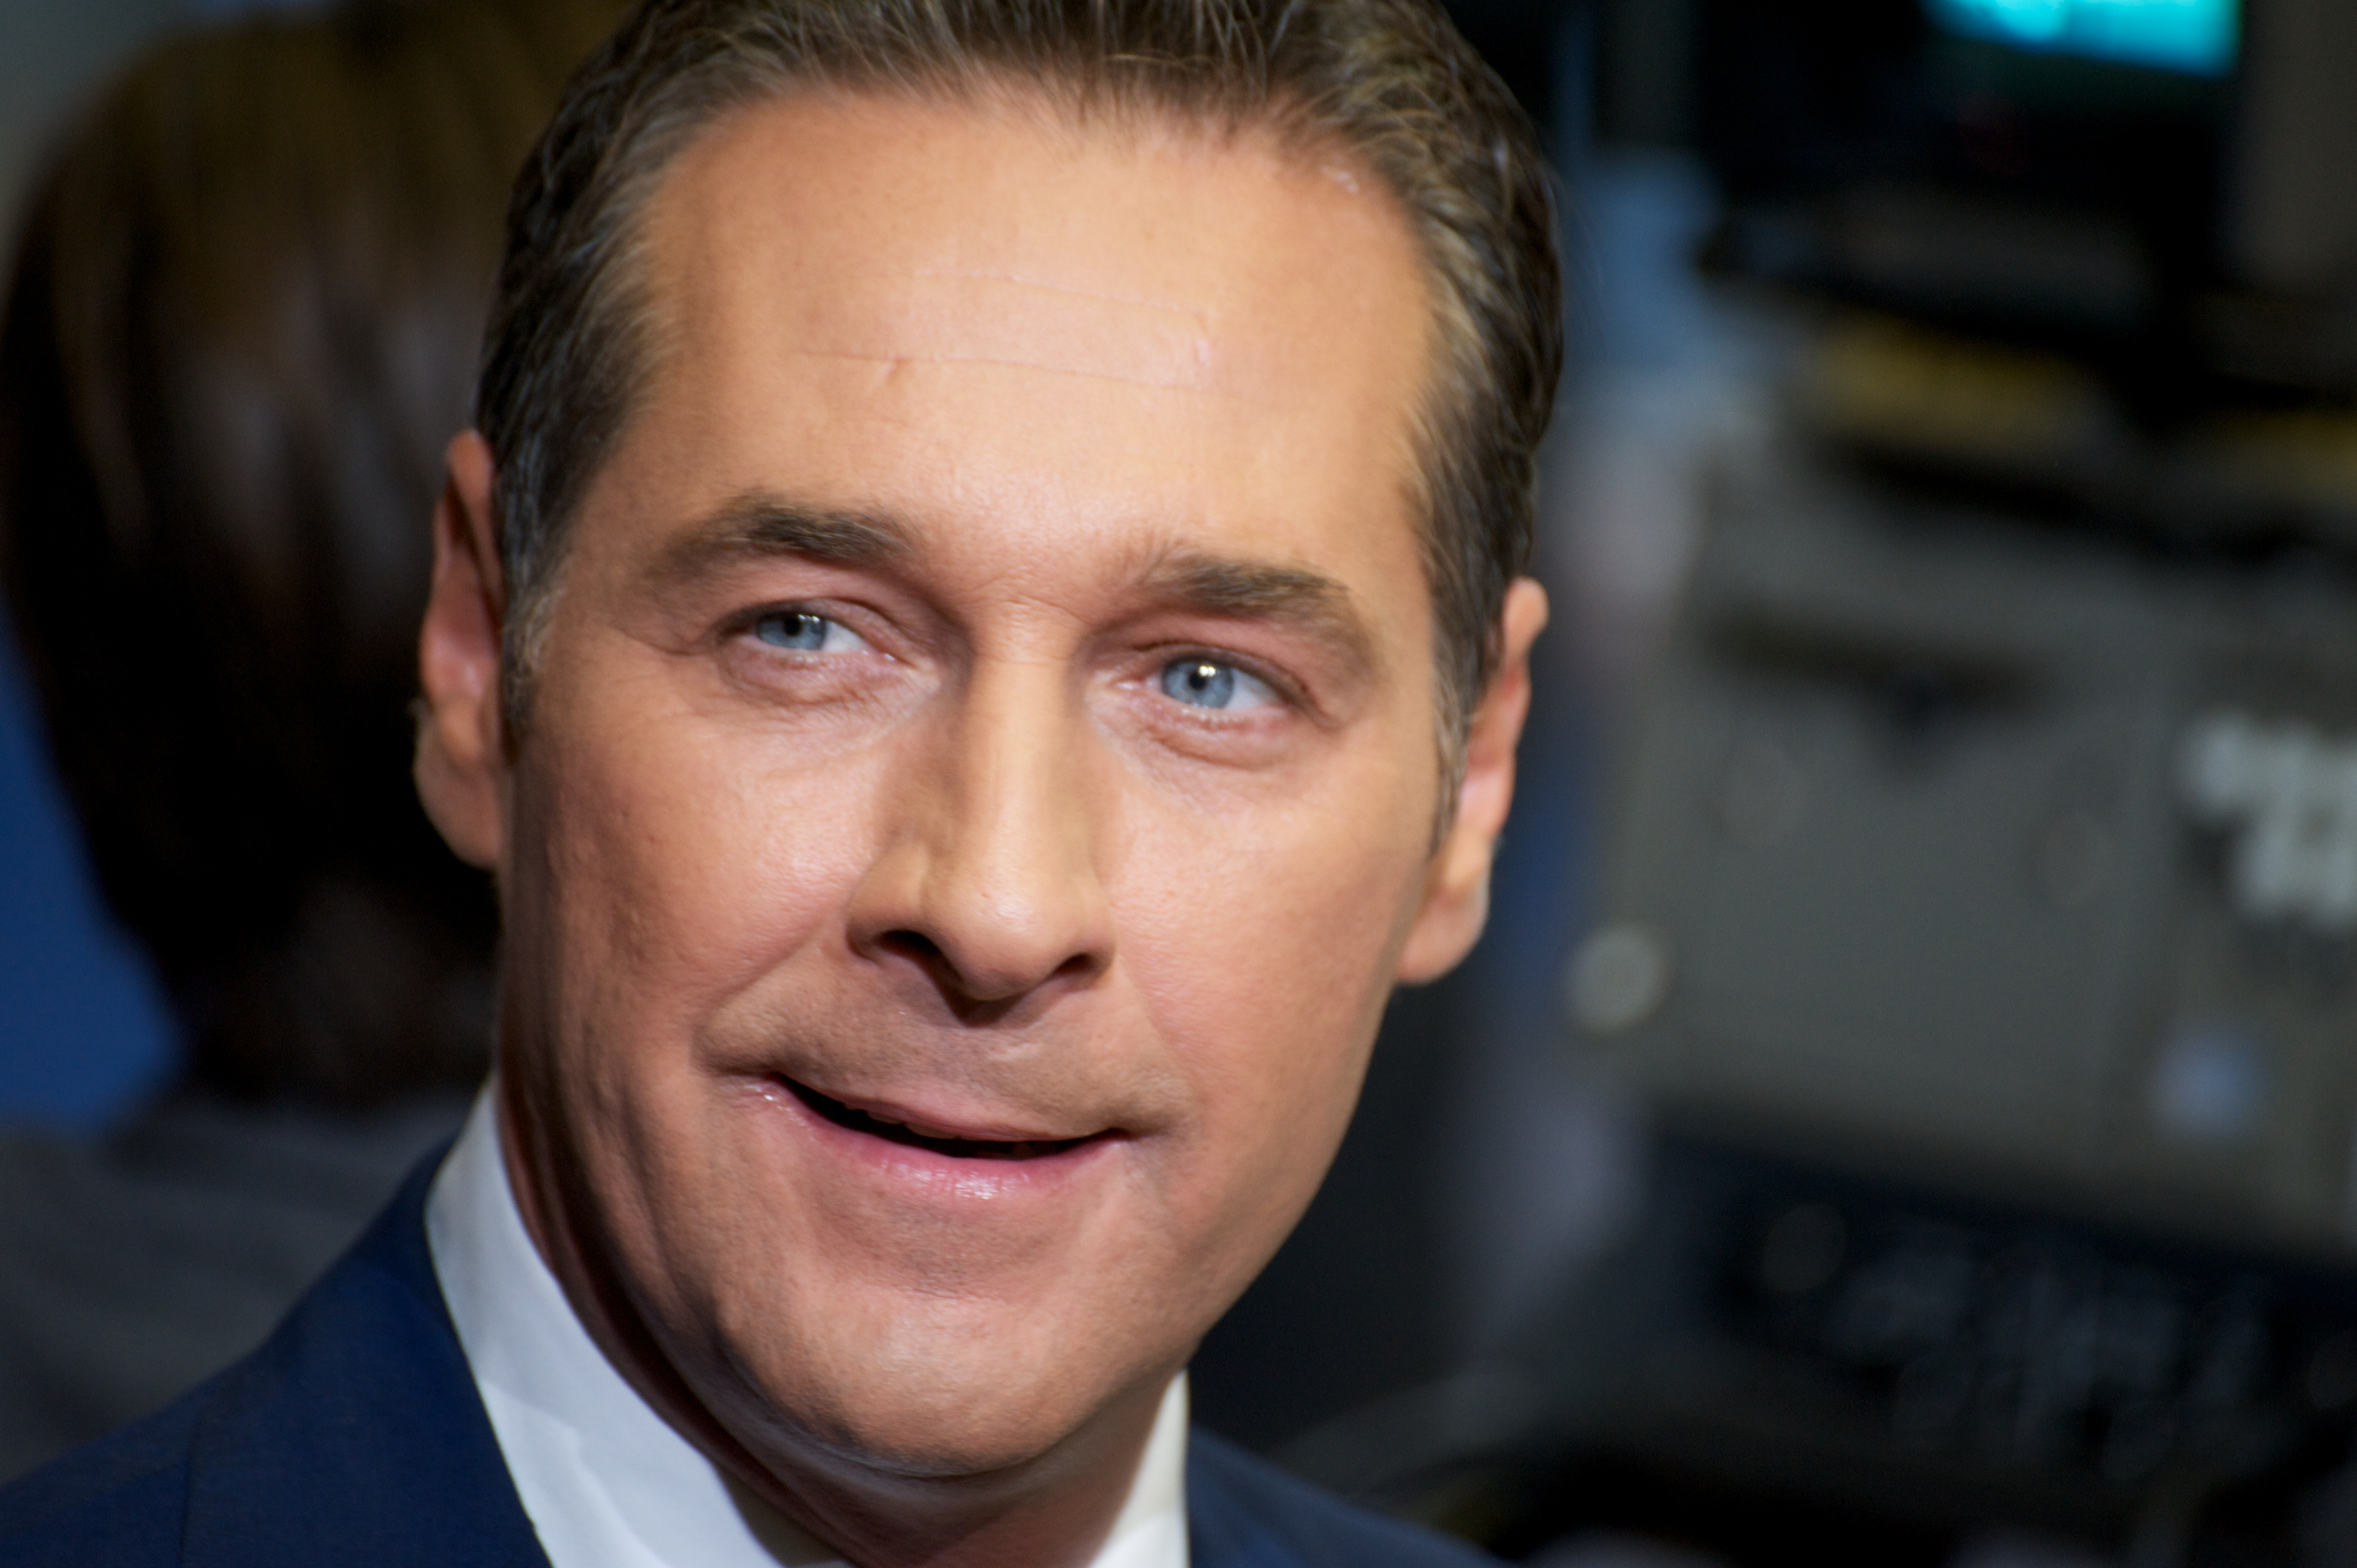 Video: Heinz-Christian Strache geht in die Offensive